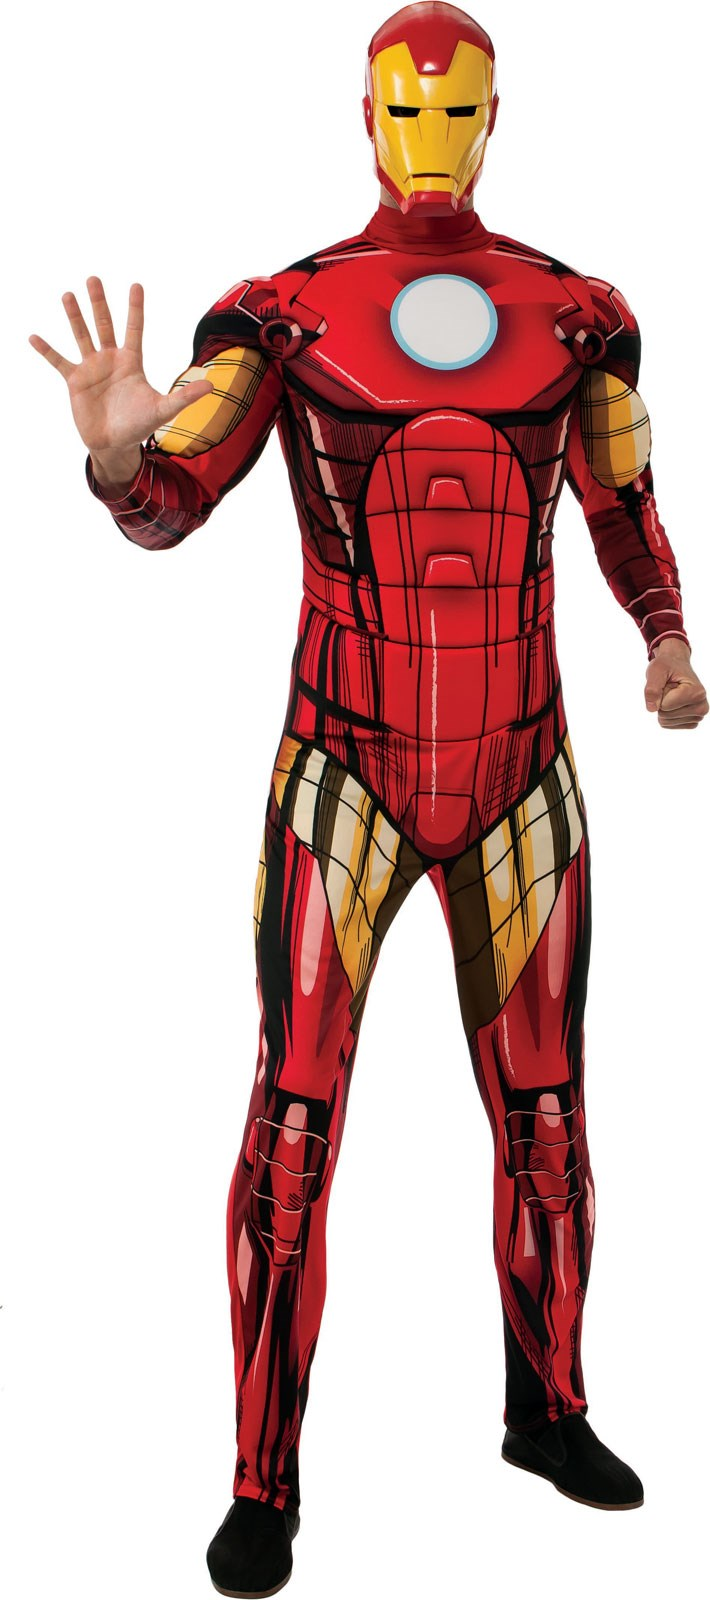 marvel classic deluxe iron man costume. Black Bedroom Furniture Sets. Home Design Ideas